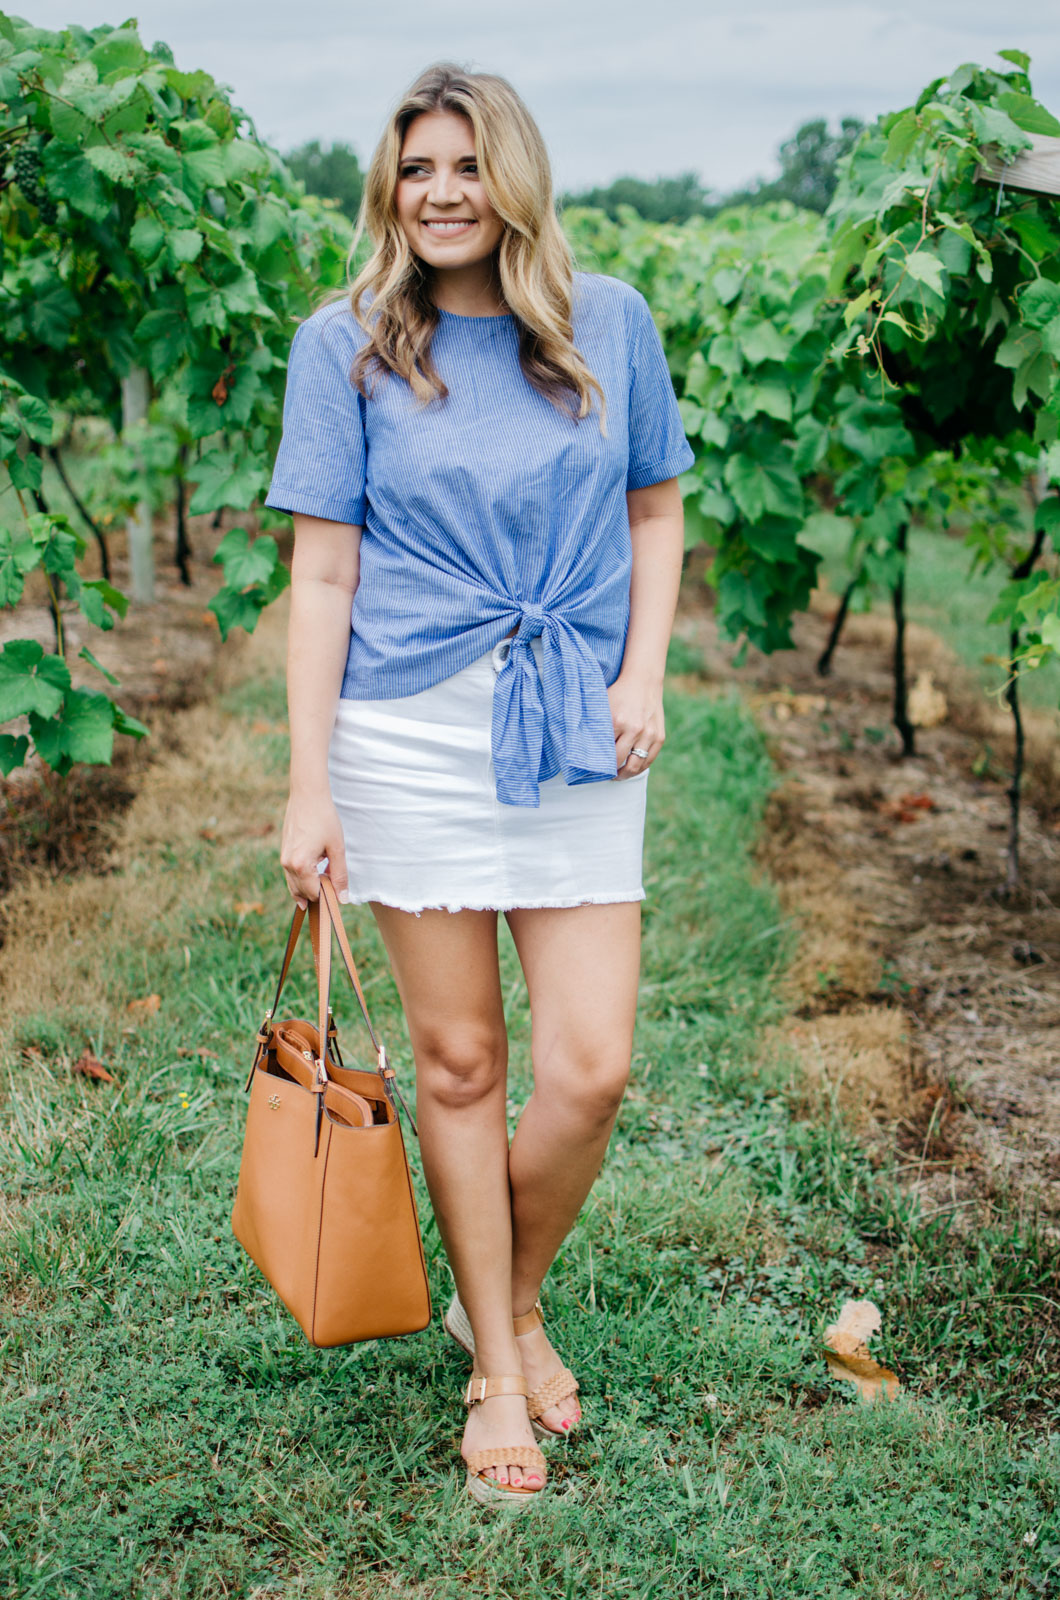 what to wear to a winery - tie front top | Want more cute Summer outfits? Head to bylaurenm.com!